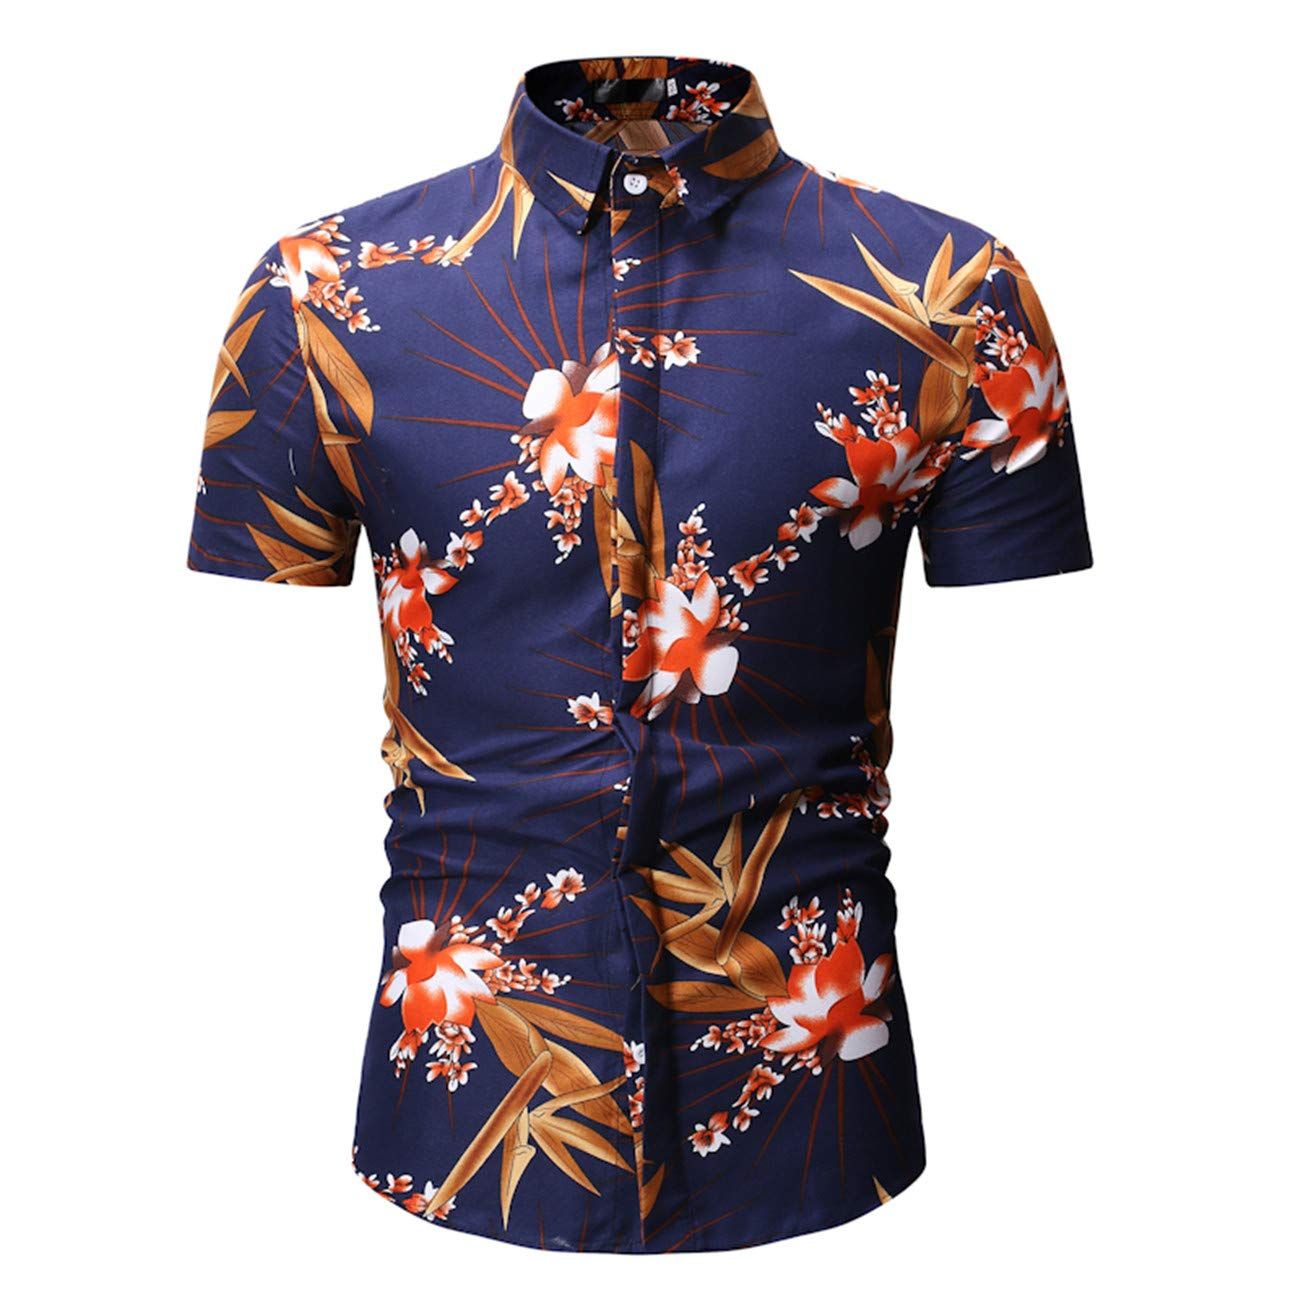 Mens Short-Sleeved Leisure and Fashion3 Color Button Down Floral Printed Shirt